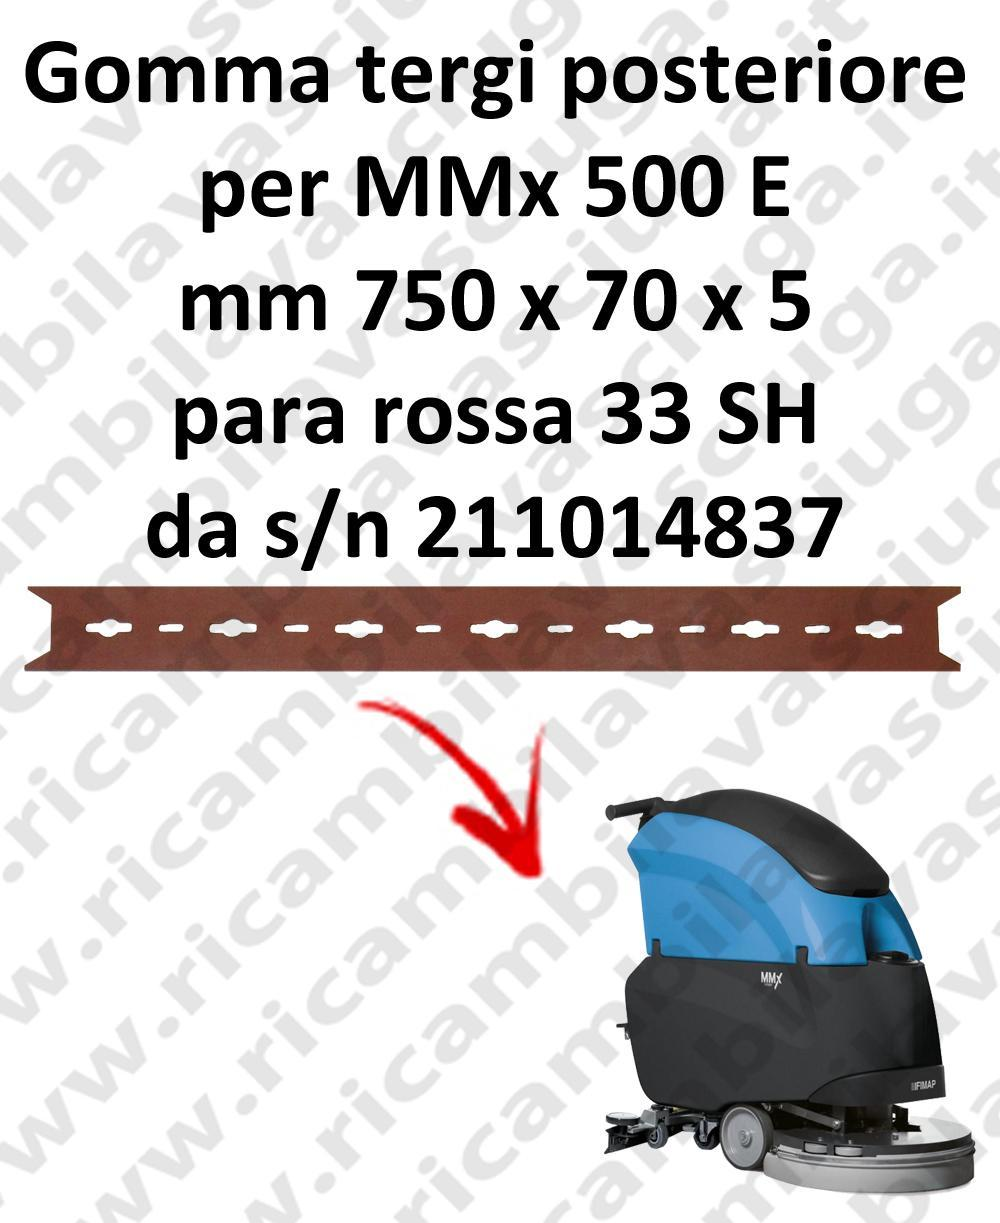 MMx 500 E Back Squeegee rubber for FIMAP  accessories, reaplacement, spare parts,o scrubber dryer squeegee